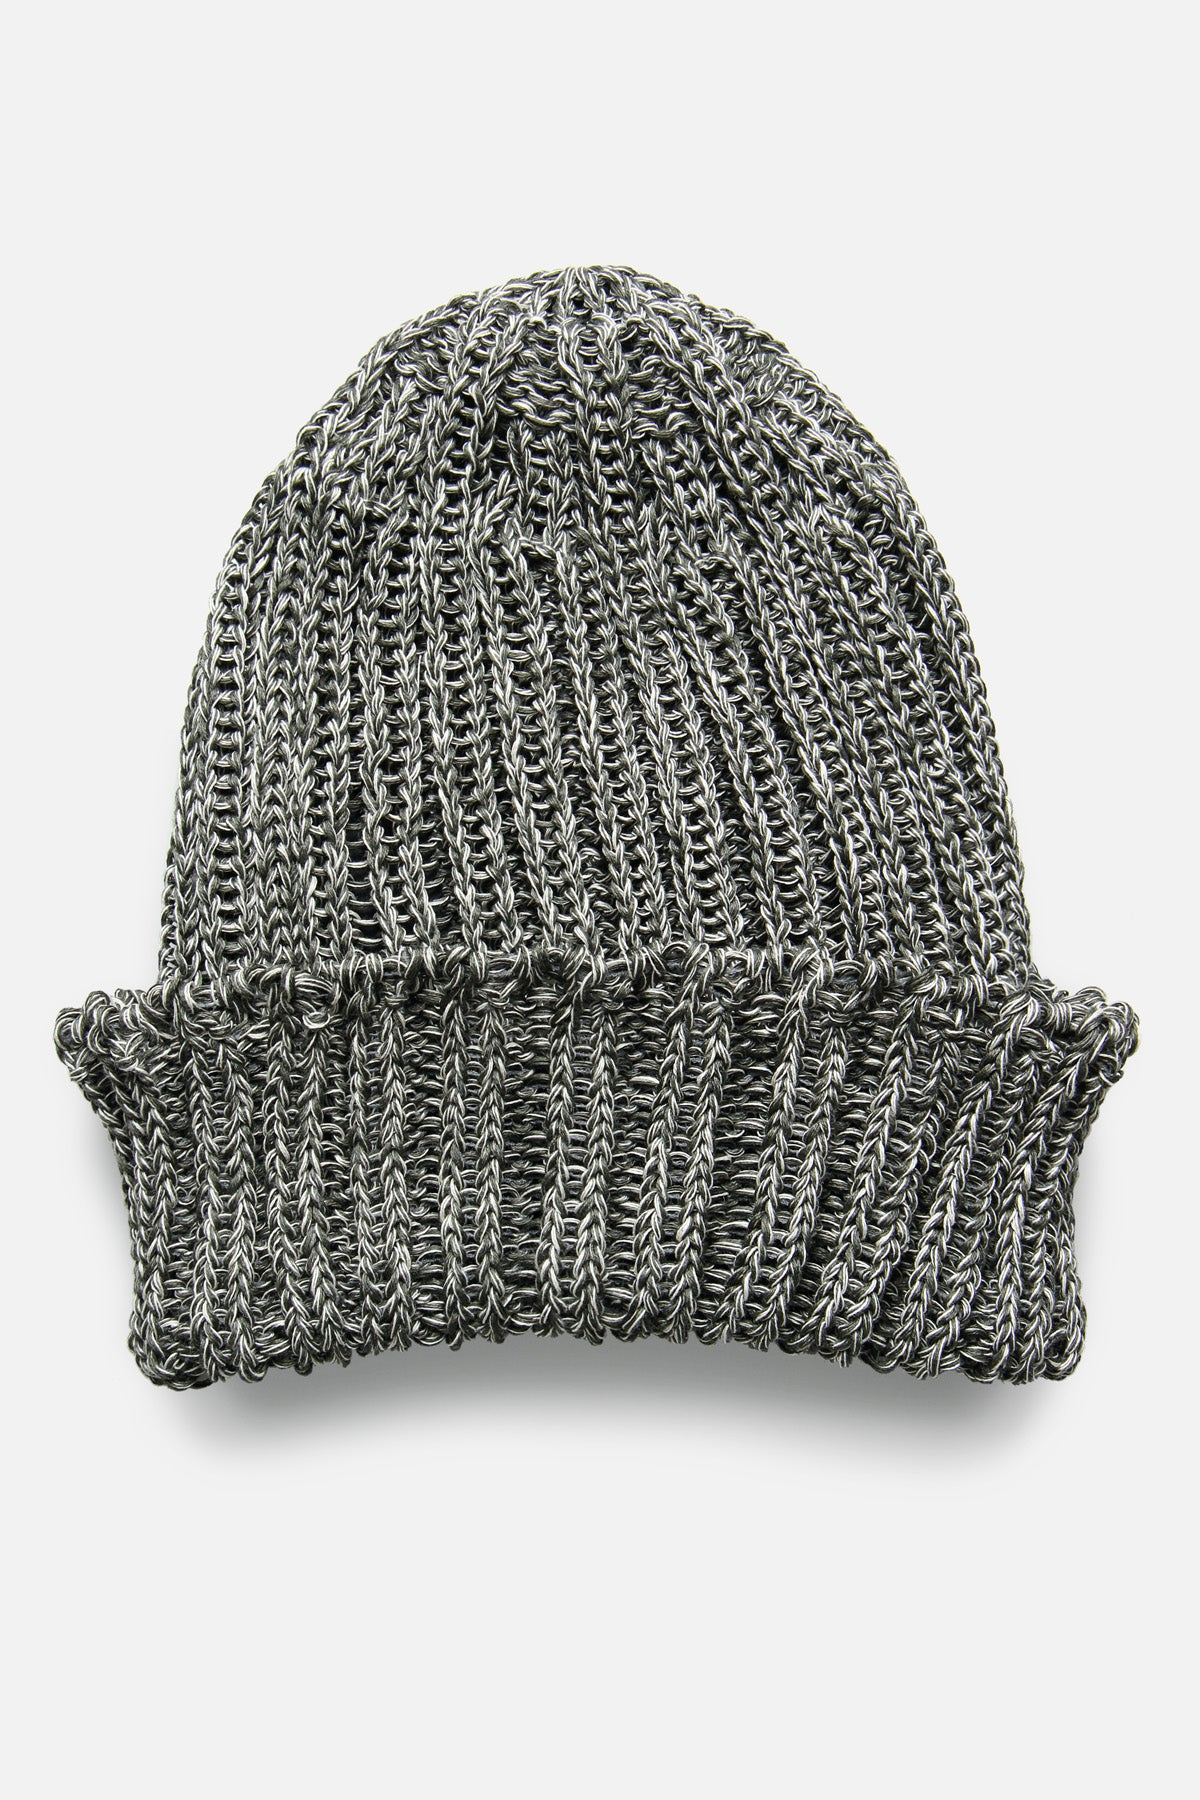 CABLEAMI WATCH CAP IN GRAY MIX - Fortune Goods